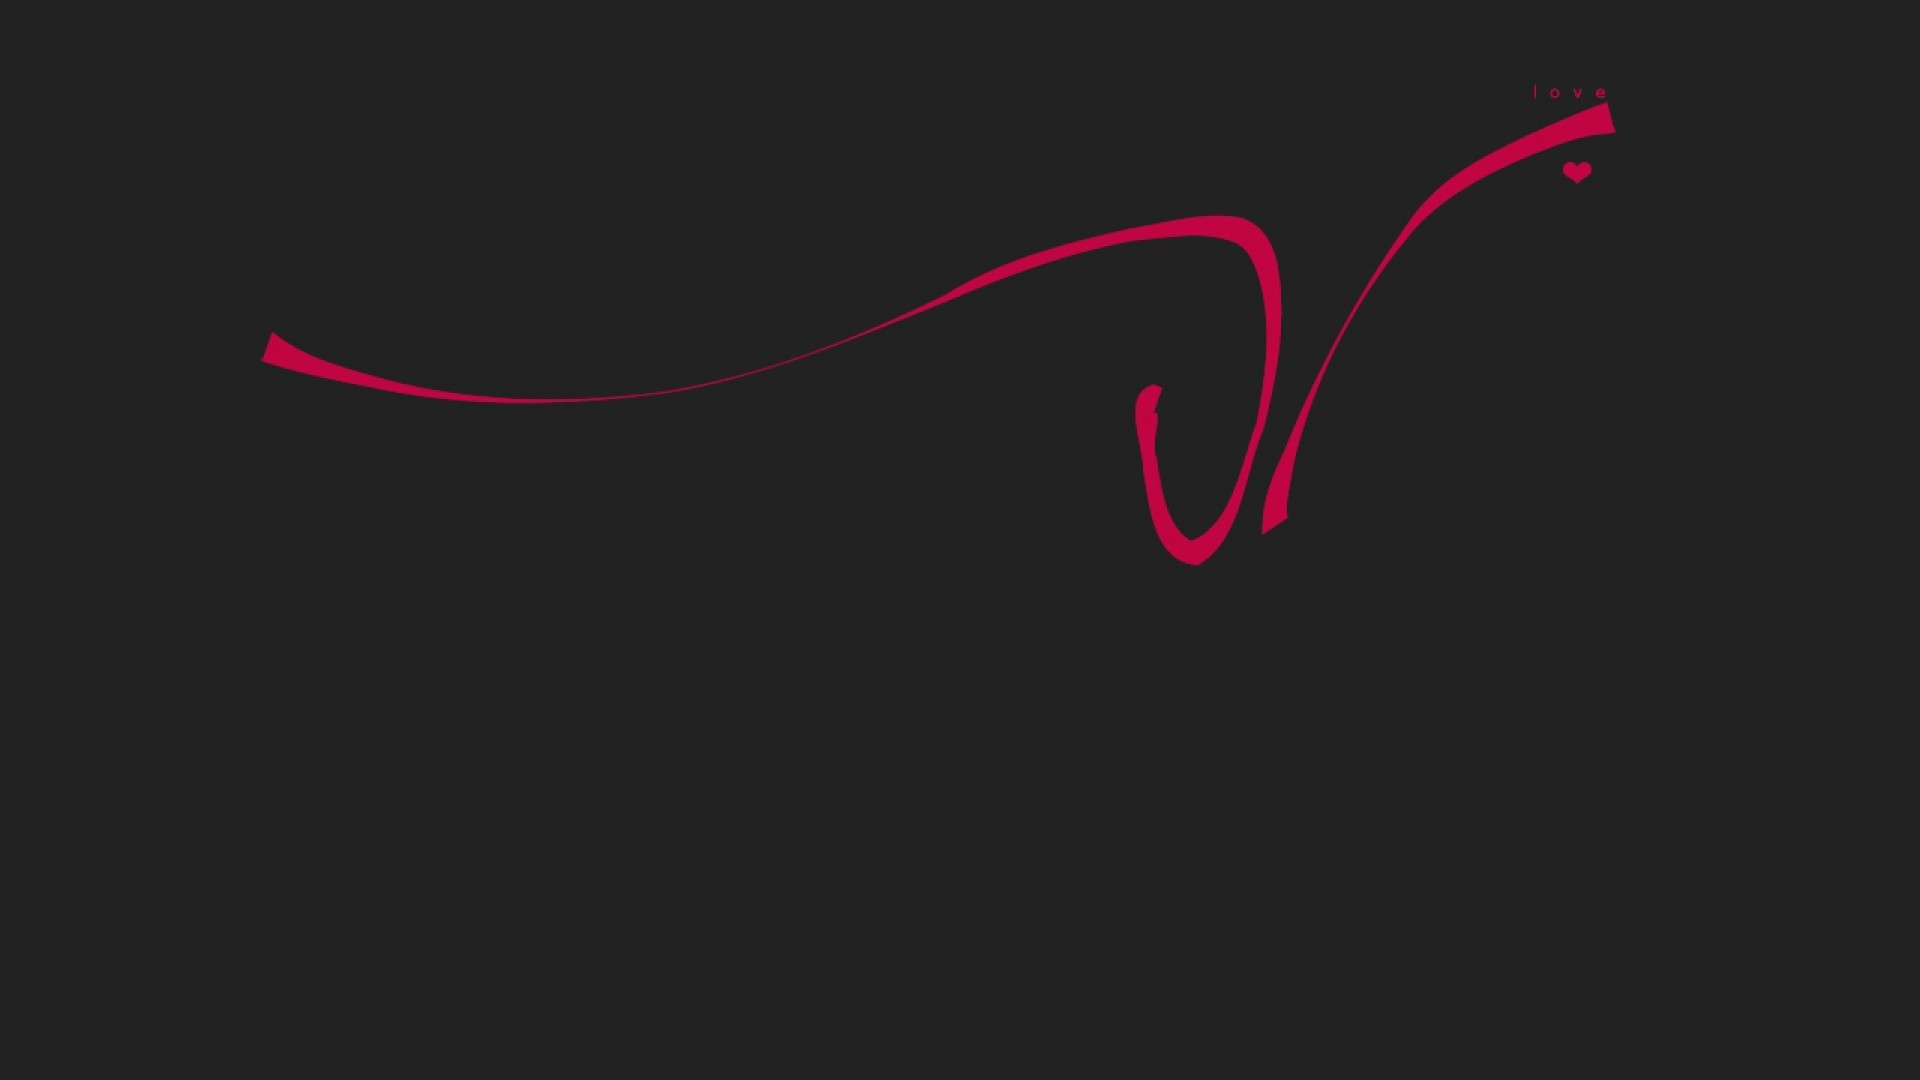 1920x1080 Preview wallpaper love, drawing, line, red, inscription, black